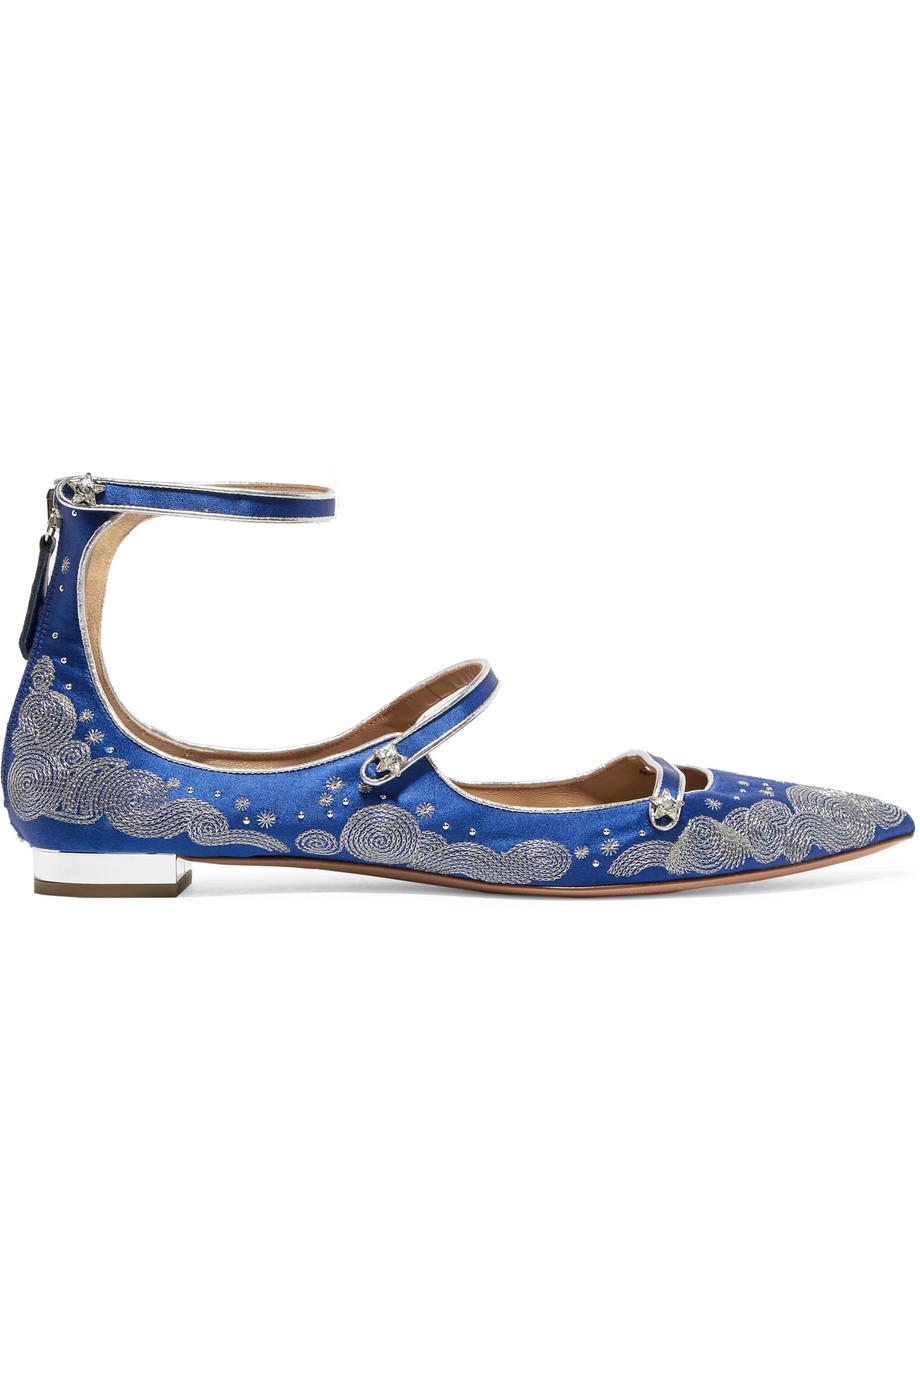 + Claudia Schiffer Cloudy Star Embroidered Satin Point-toe Flats - Blue Aquazzura Clearance Prices Ebay Outlet Manchester LkvTfw